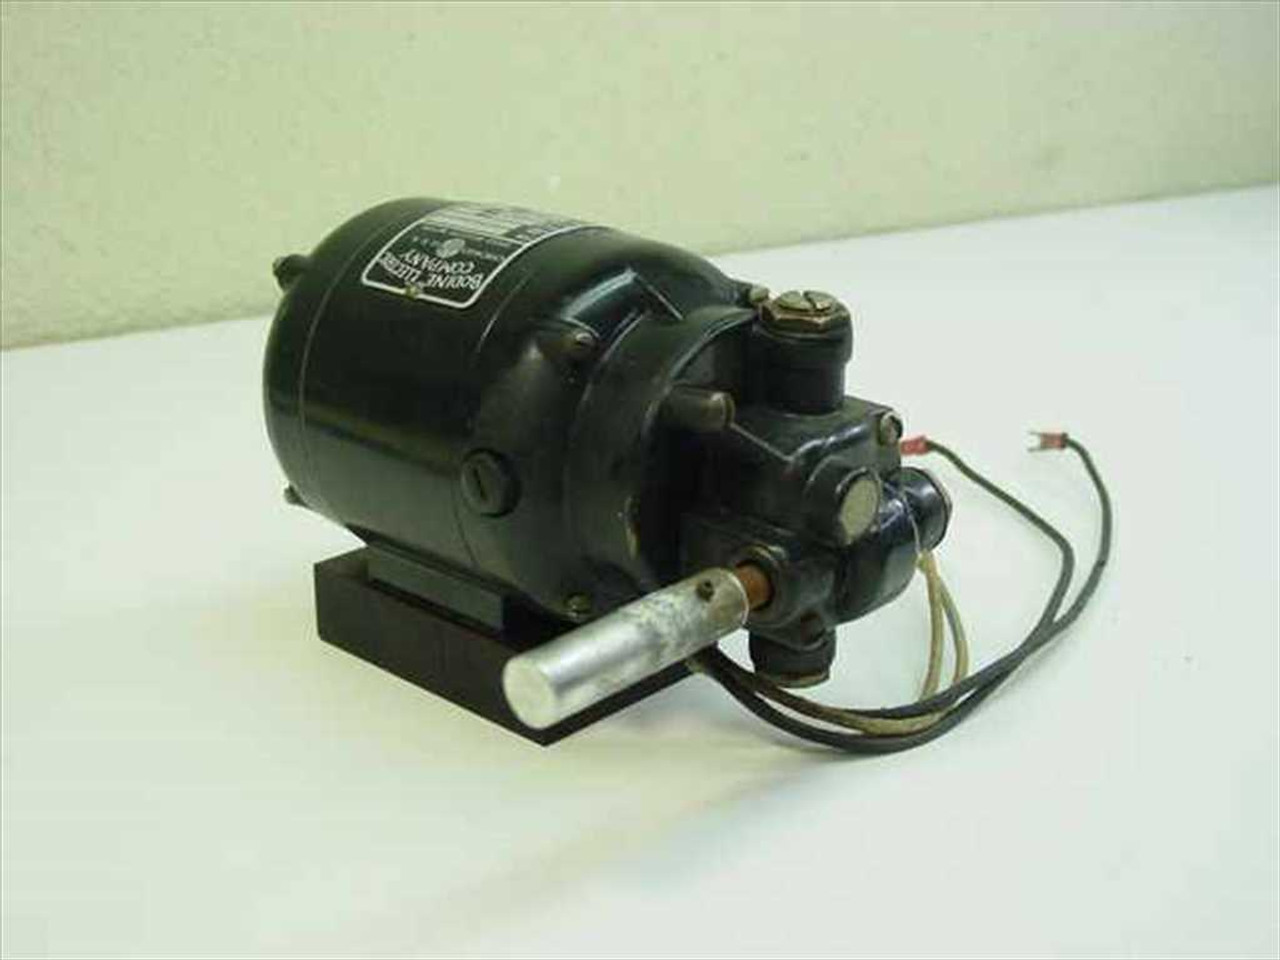 bodine electric company nsh 12r motor 1a.27__57377.1490193432?c=2 bodine electric company nsh 12r motor recycledgoods com bodine electric dc motor wiring diagram at edmiracle.co